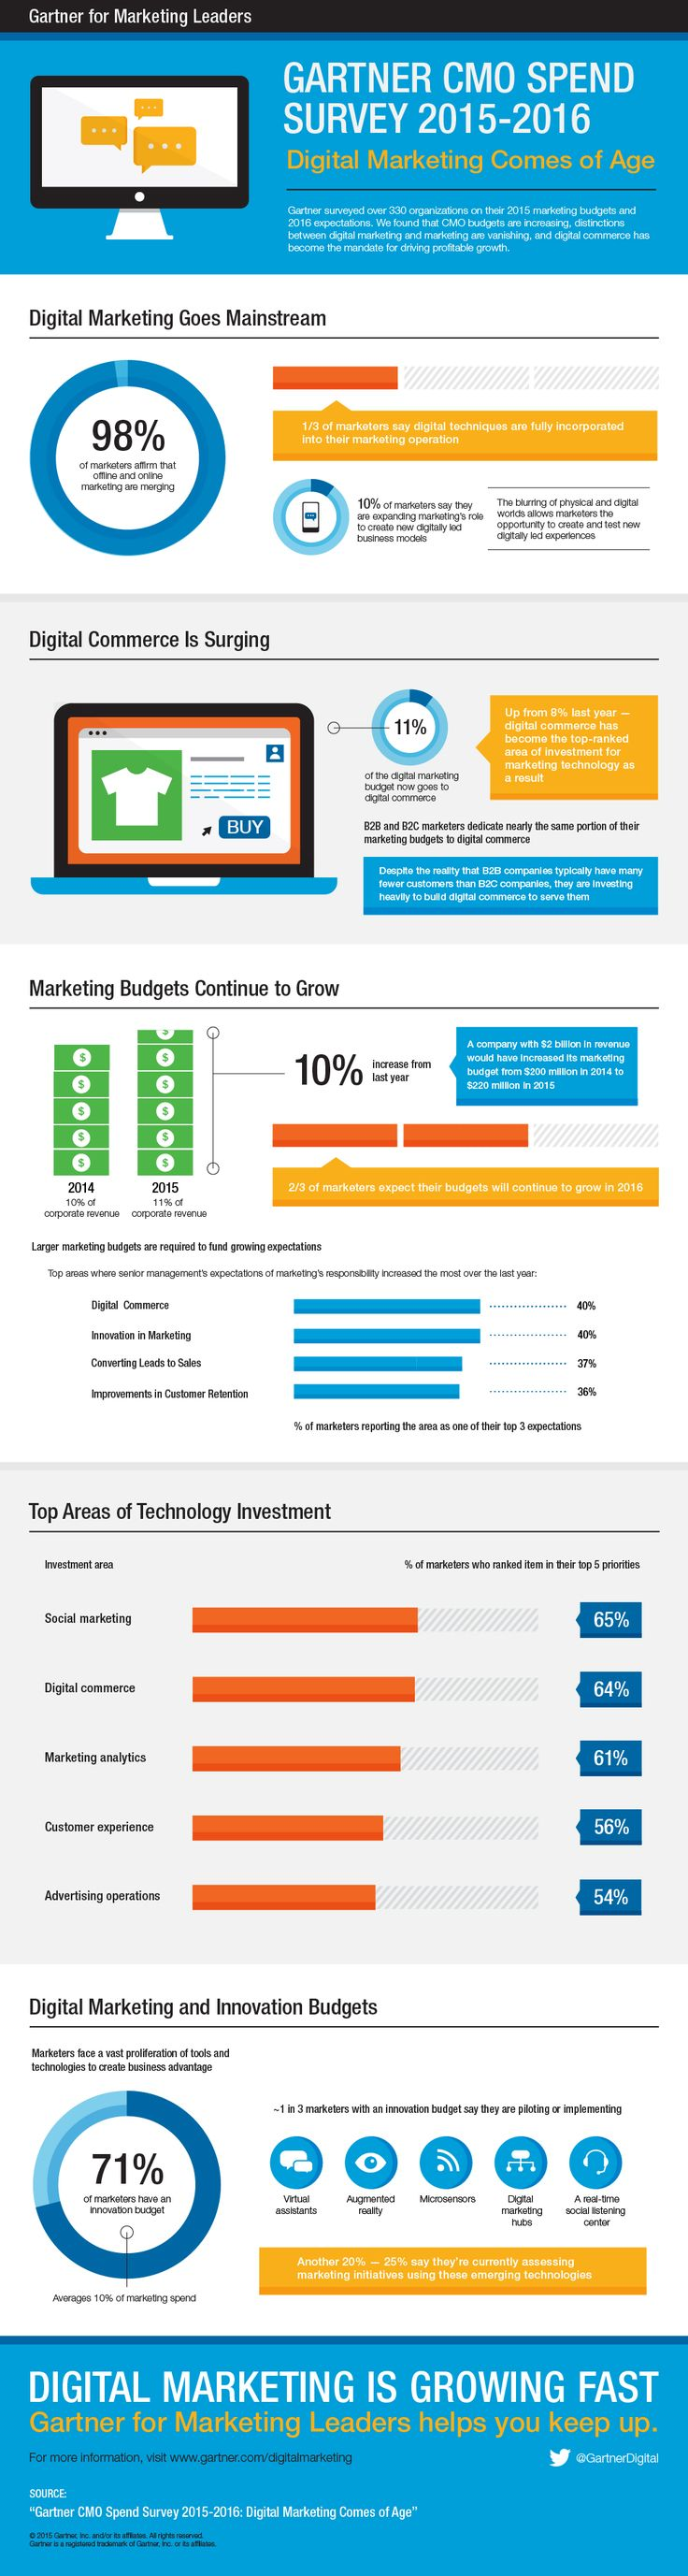 Marketing budgets on the rise as 98% of marketers agree online & offline efforts merging according to @Gartner_inc.